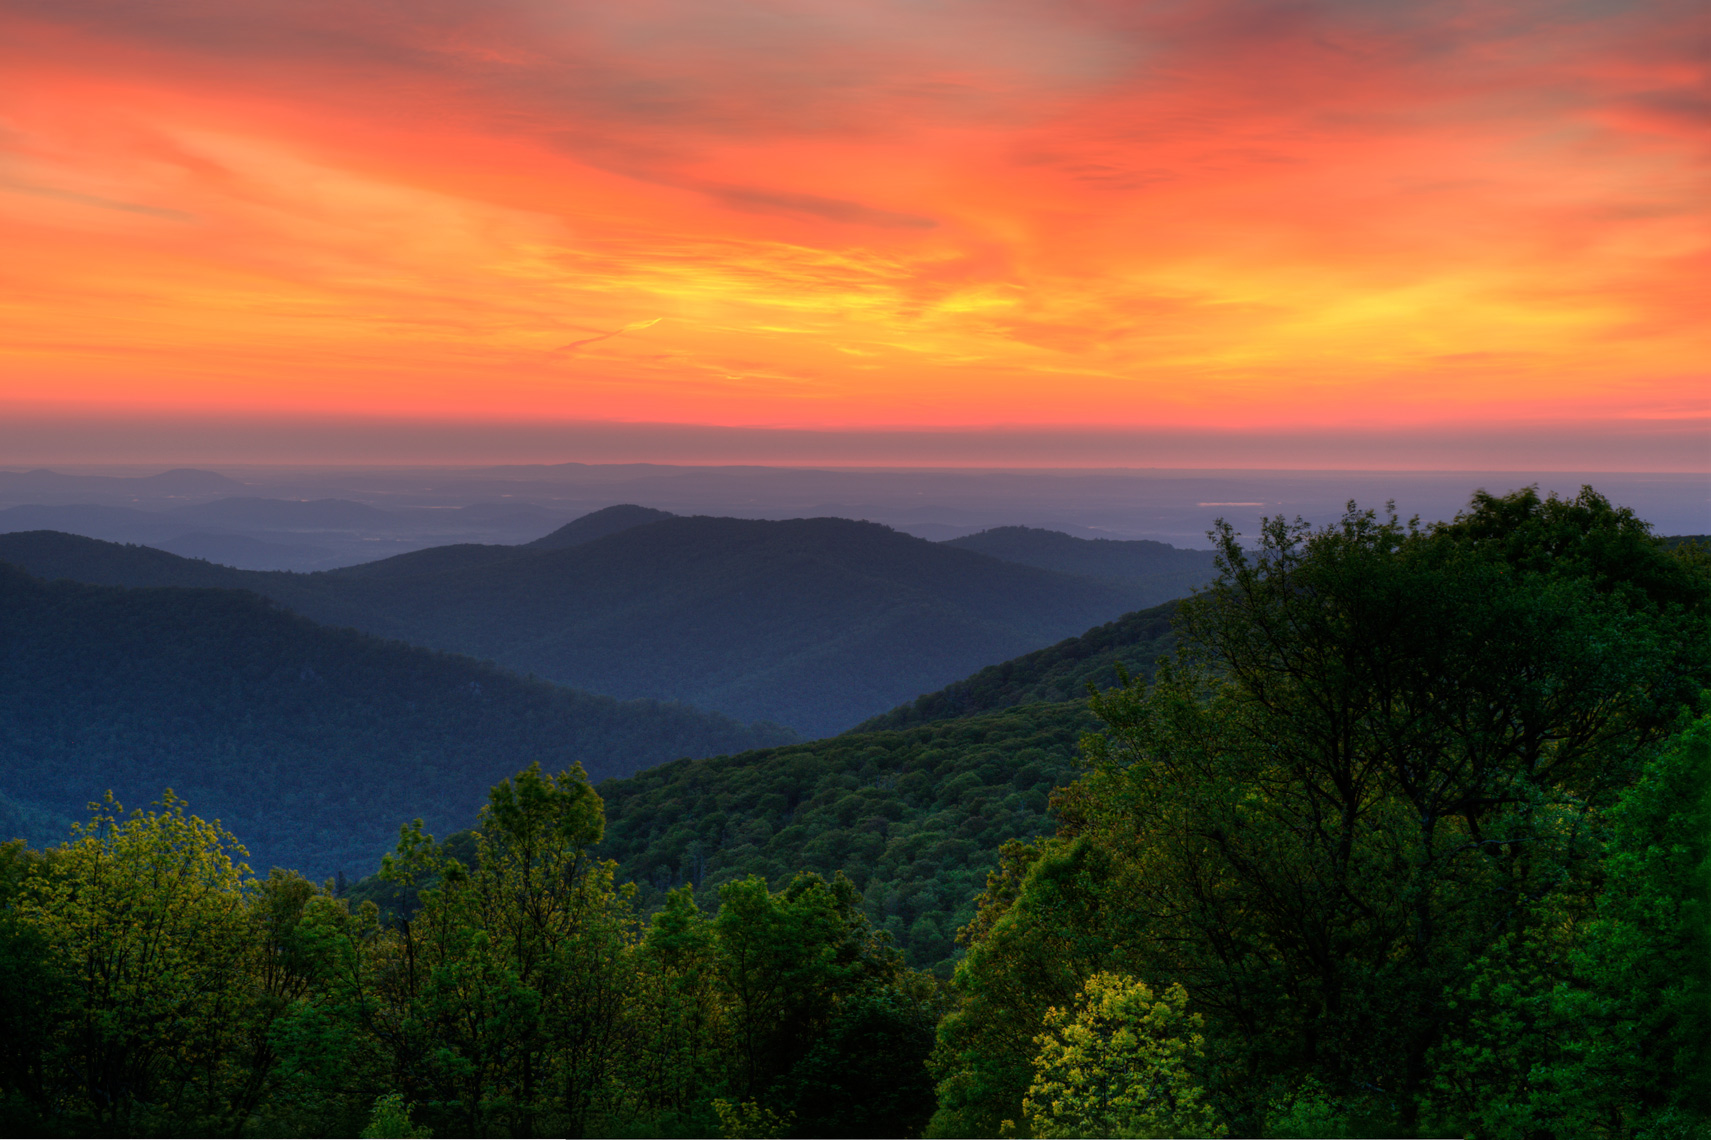 Shenandoah Dawn, Shenandoah National Park, Virginia